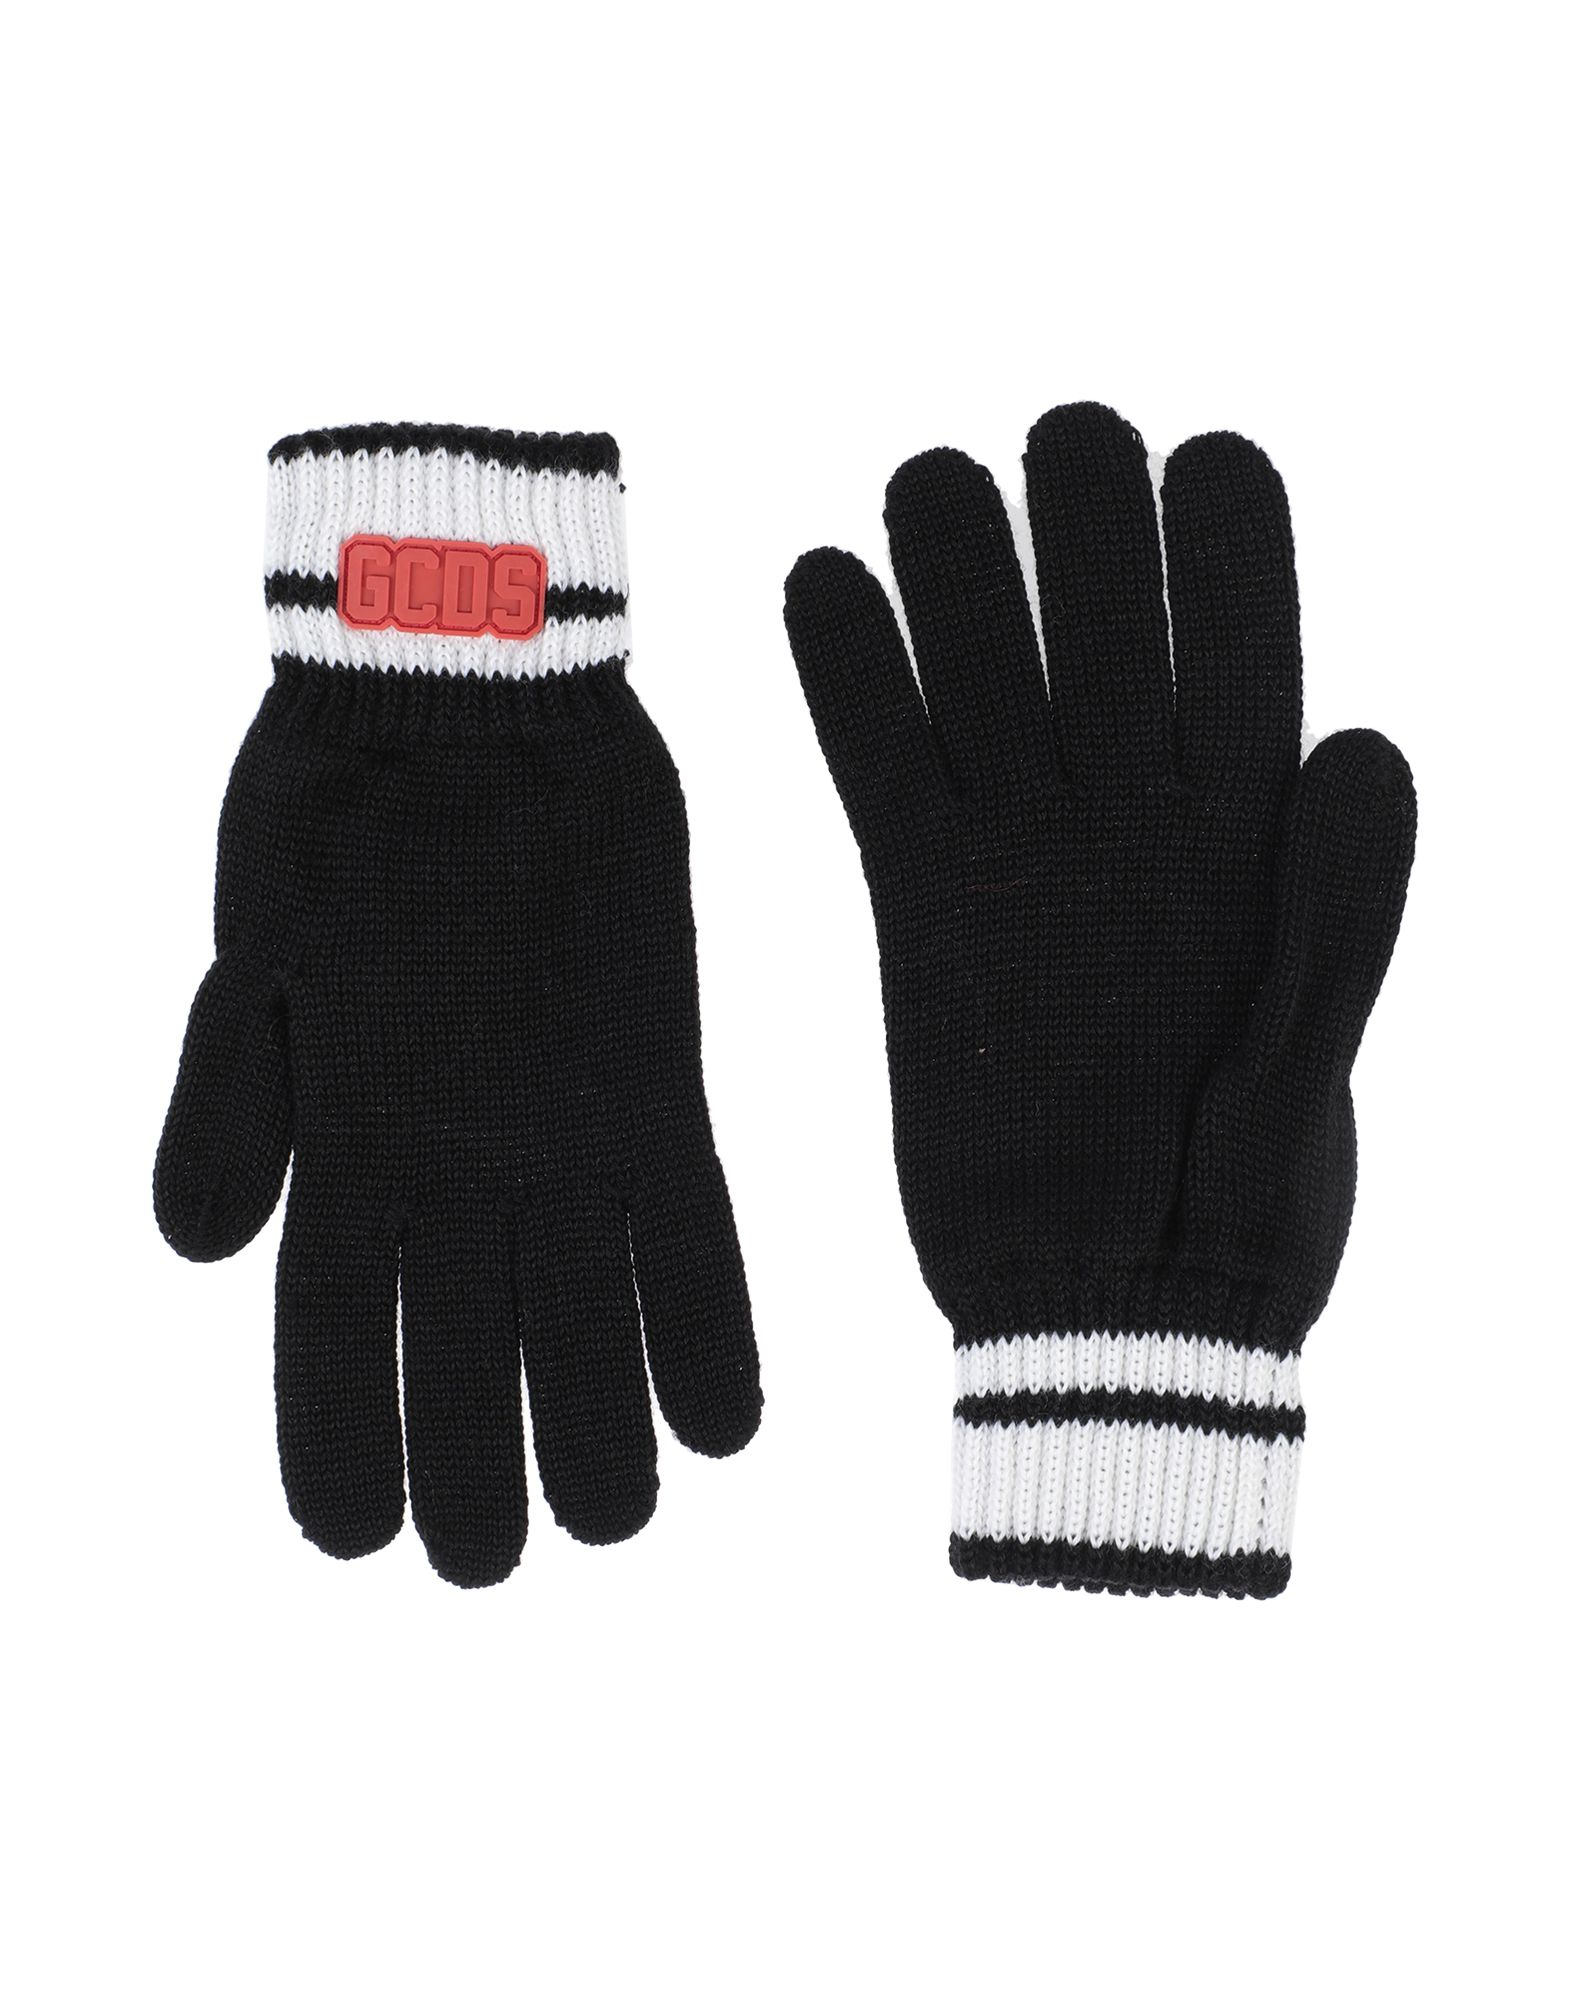 GCDS Gloves. knitted, logo, solid color, lightweight knit. 50% Wool, 50% Acrylic